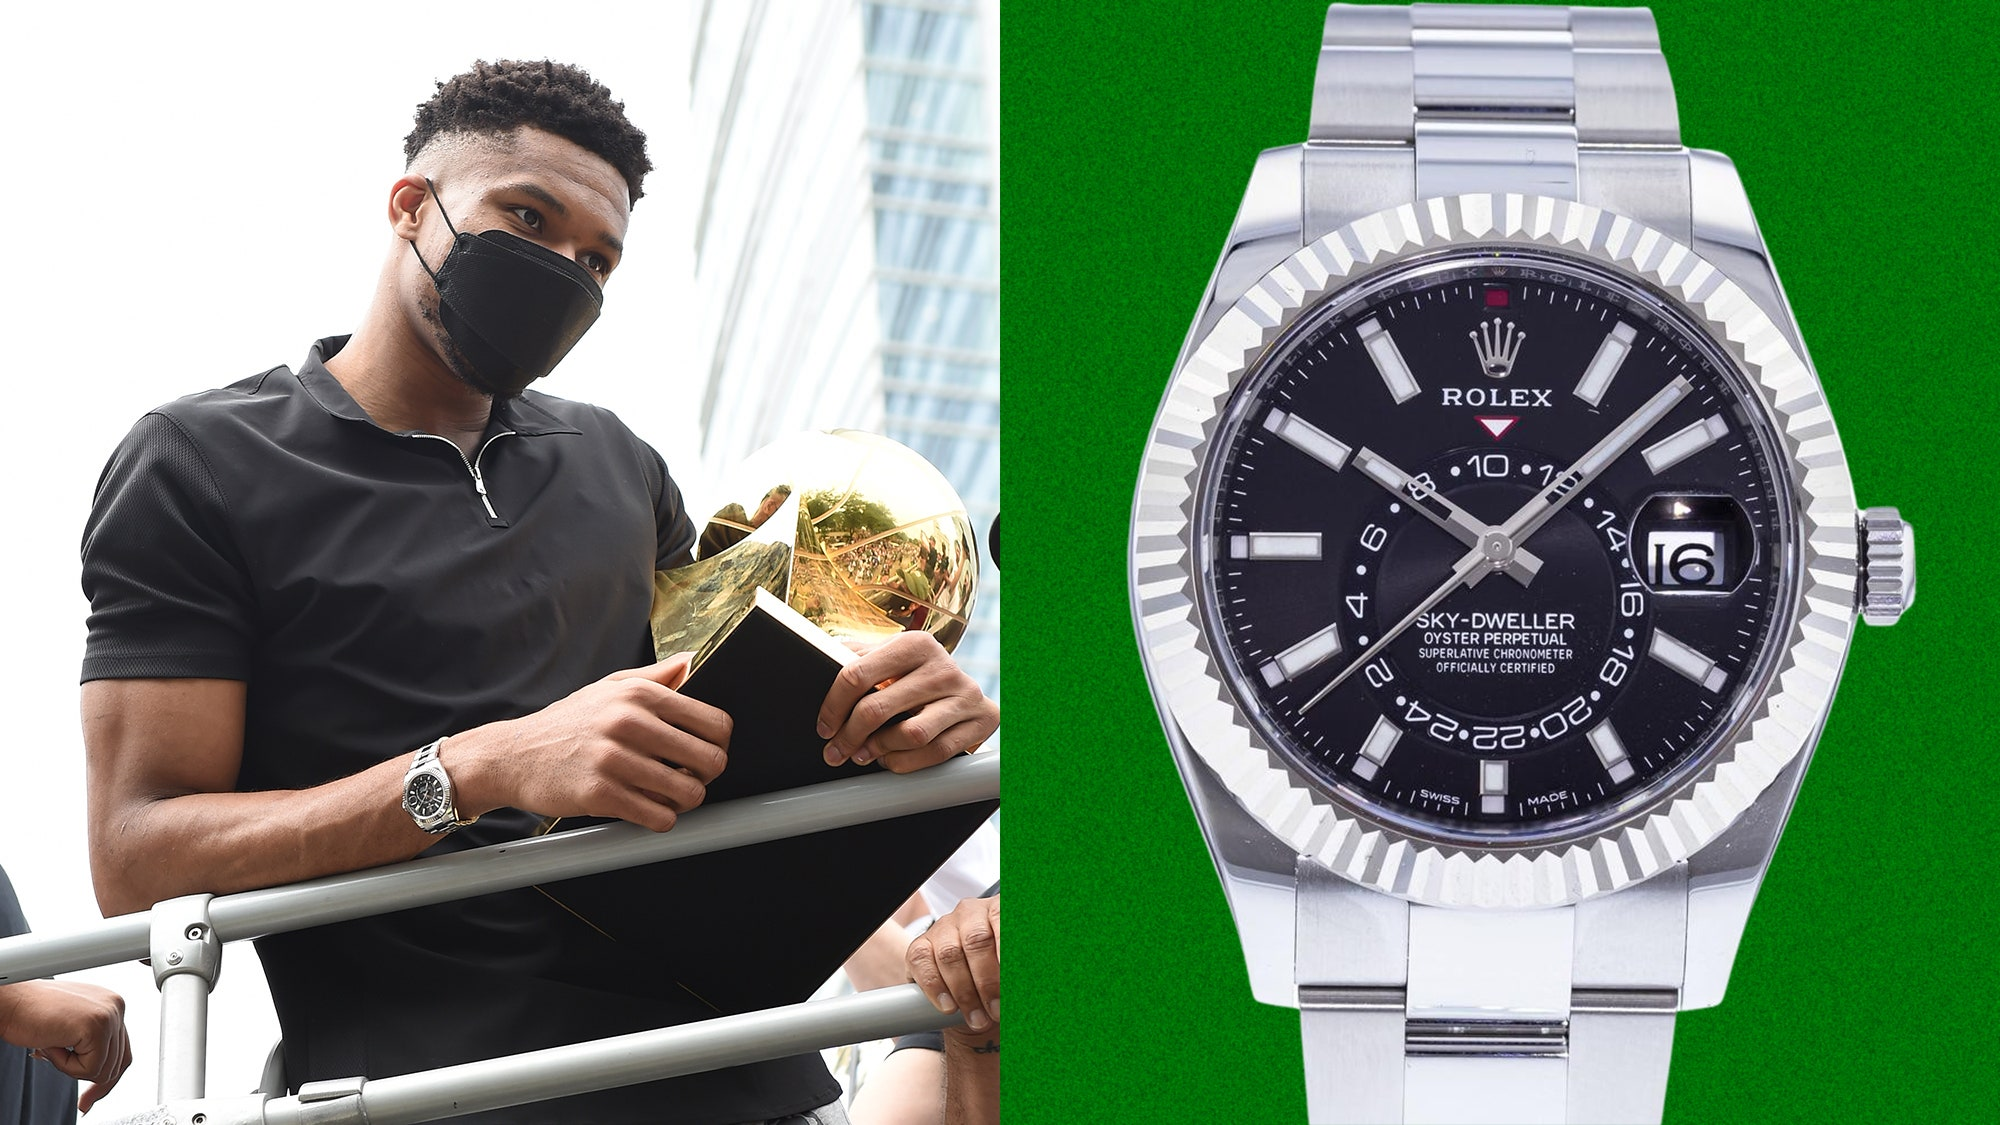 giannis-antetokounmpo-got-a-new-watch-to-go-with-his-finals-mvp-trophy